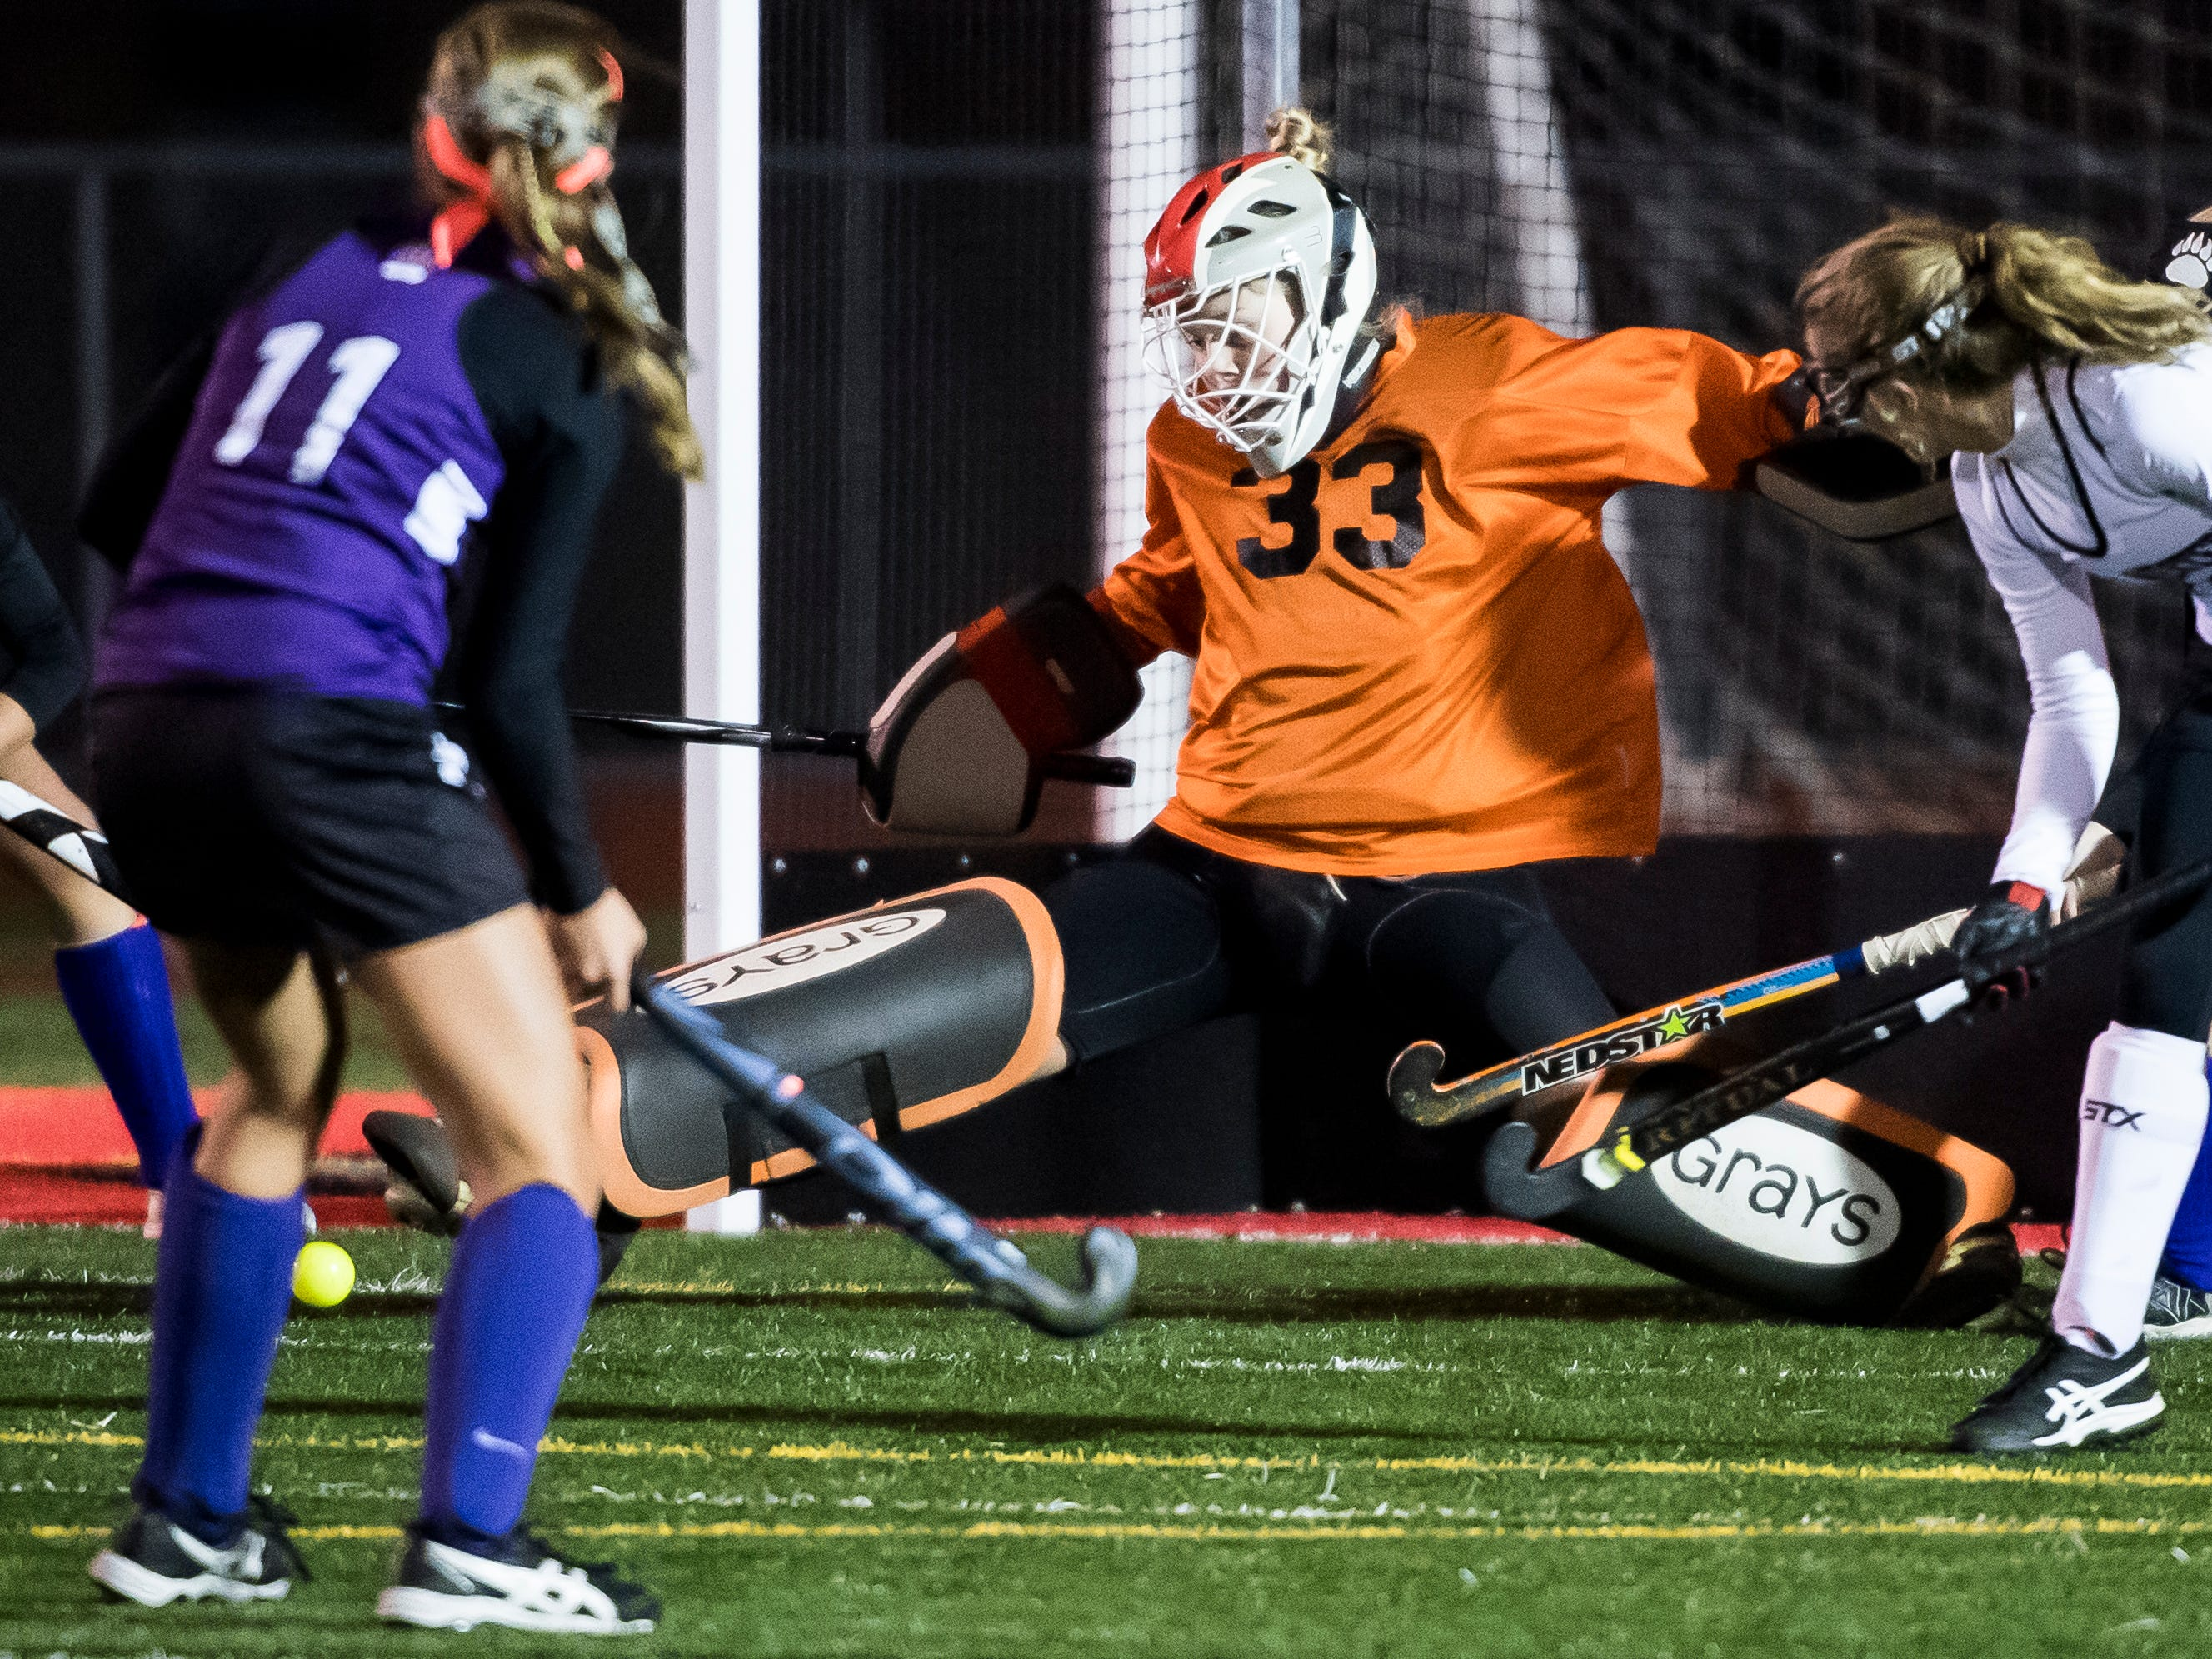 South Western goal keeper Aunnie Hacker makes a save off a Northern York shot during a PIAA District III first round game at Bermudian Springs High School on Wednesday, October 24, 2018. The Mustangs fell 4-2.